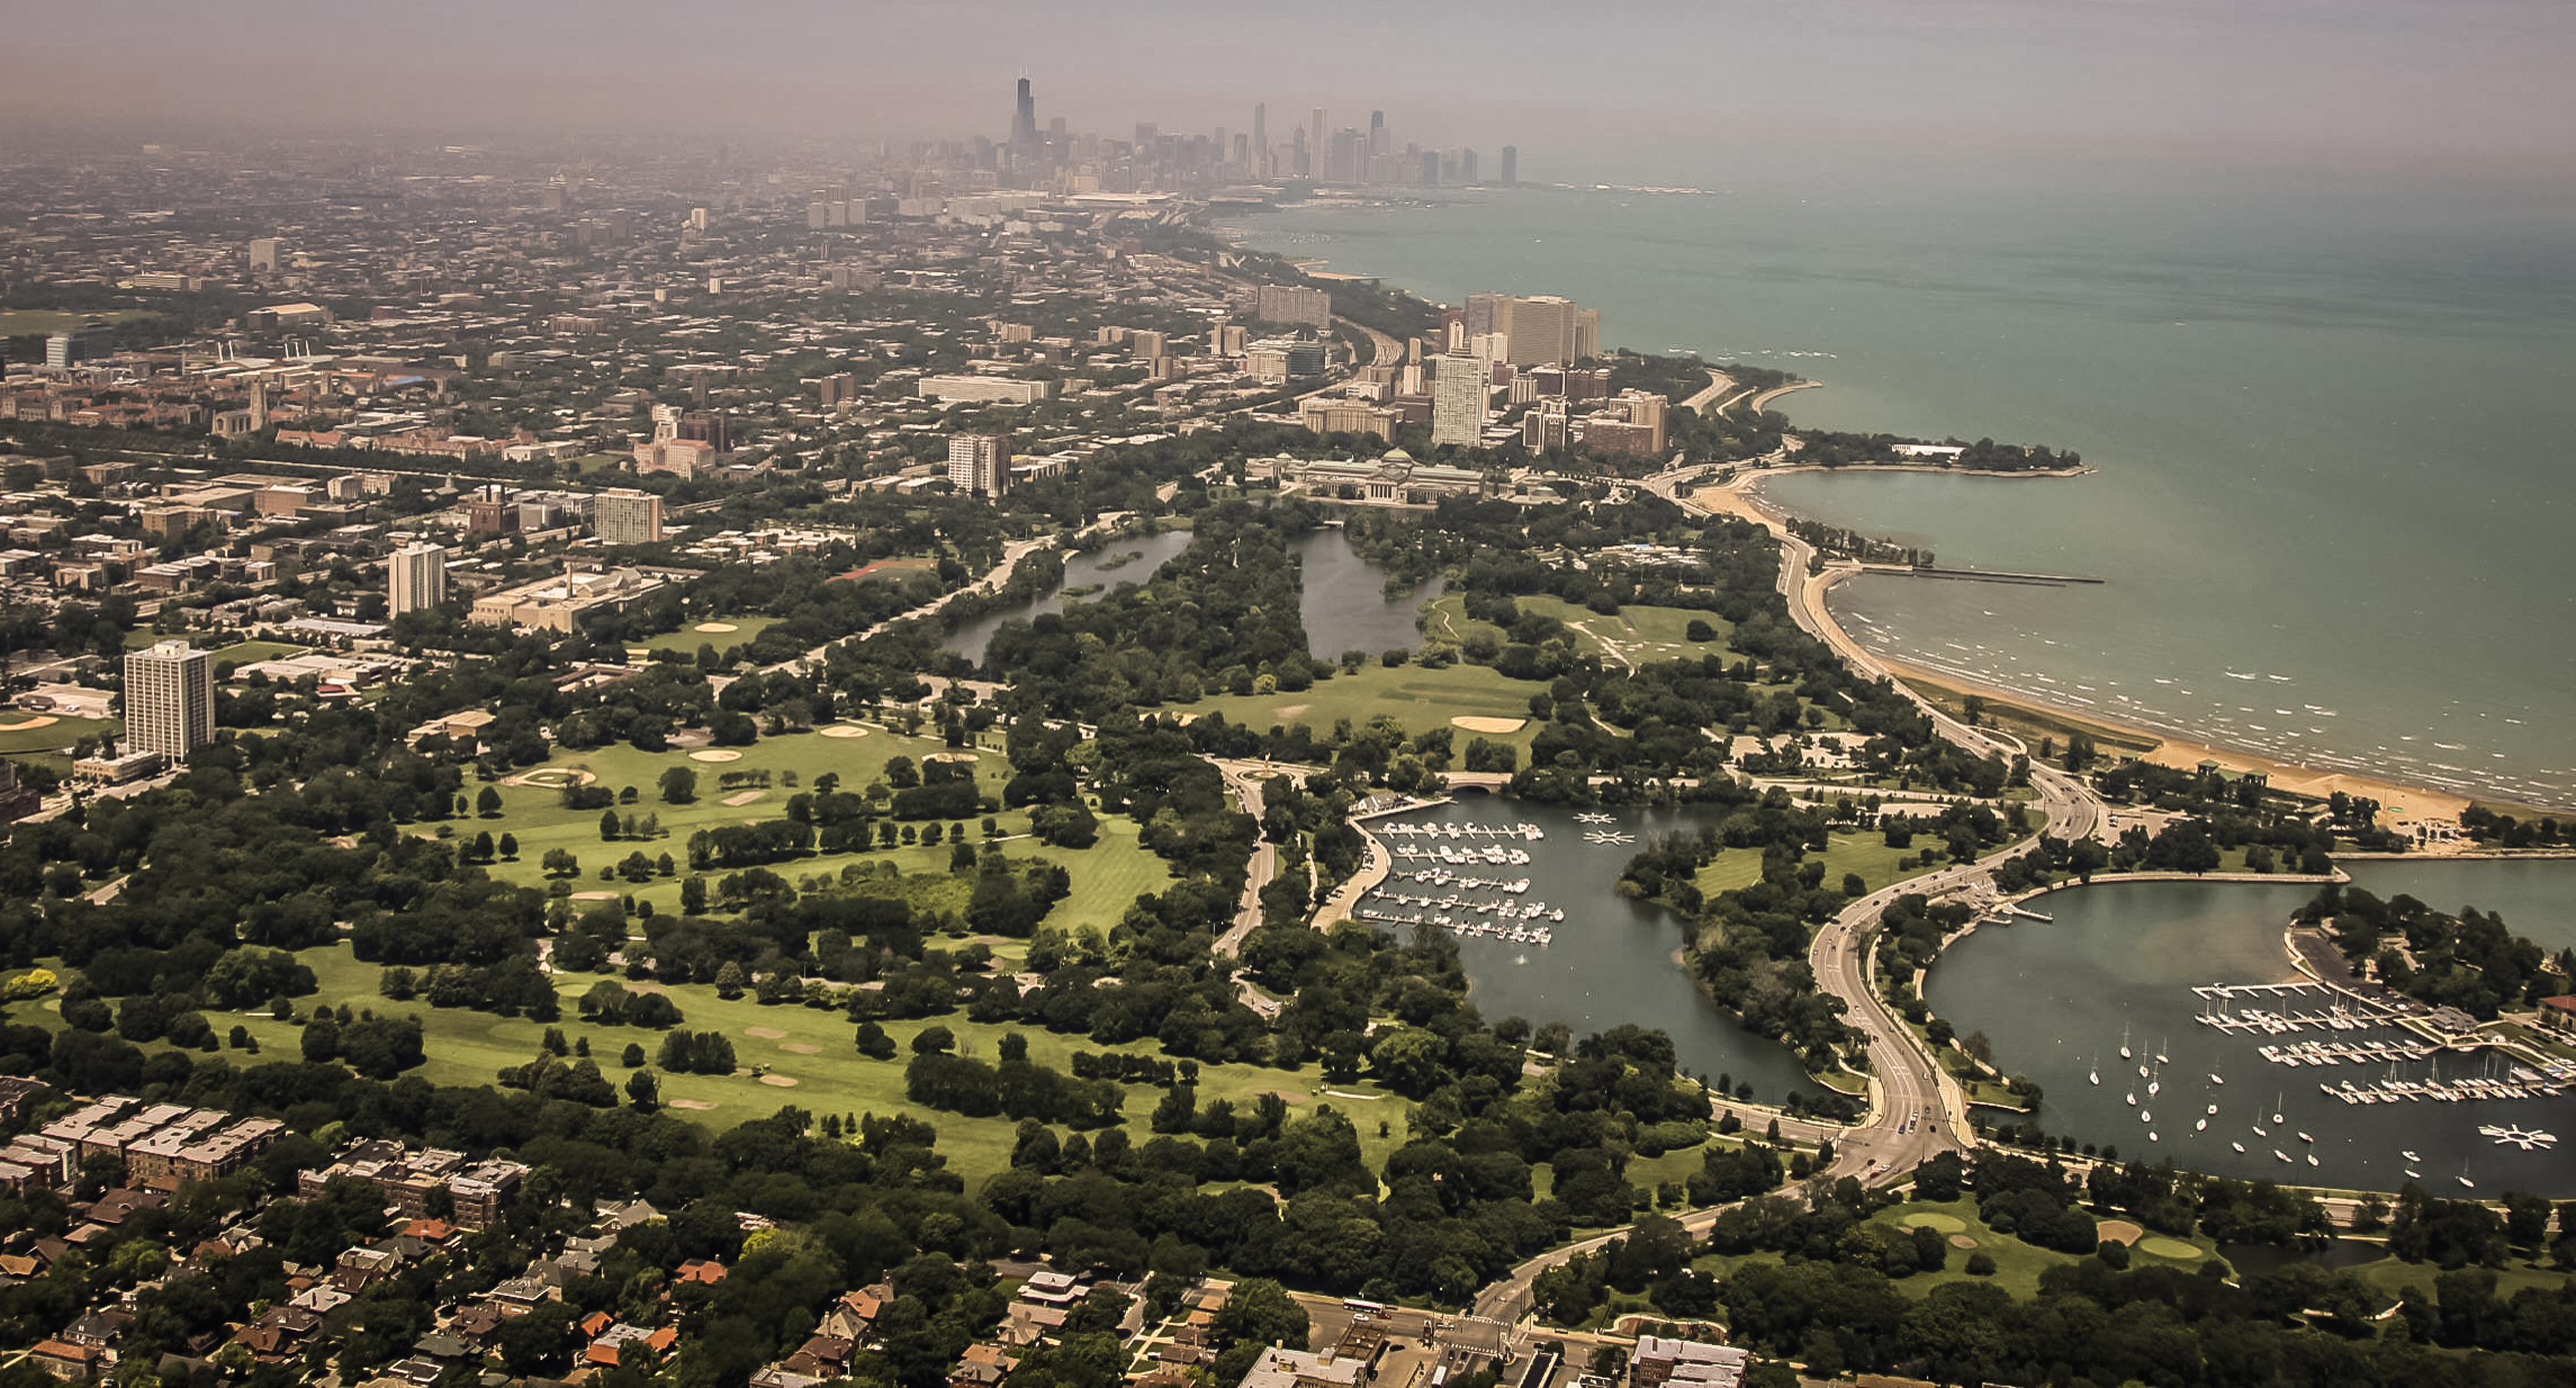 The Chicago Park District wants to merge the Jackson Park (shown) and South Shore golf courses.